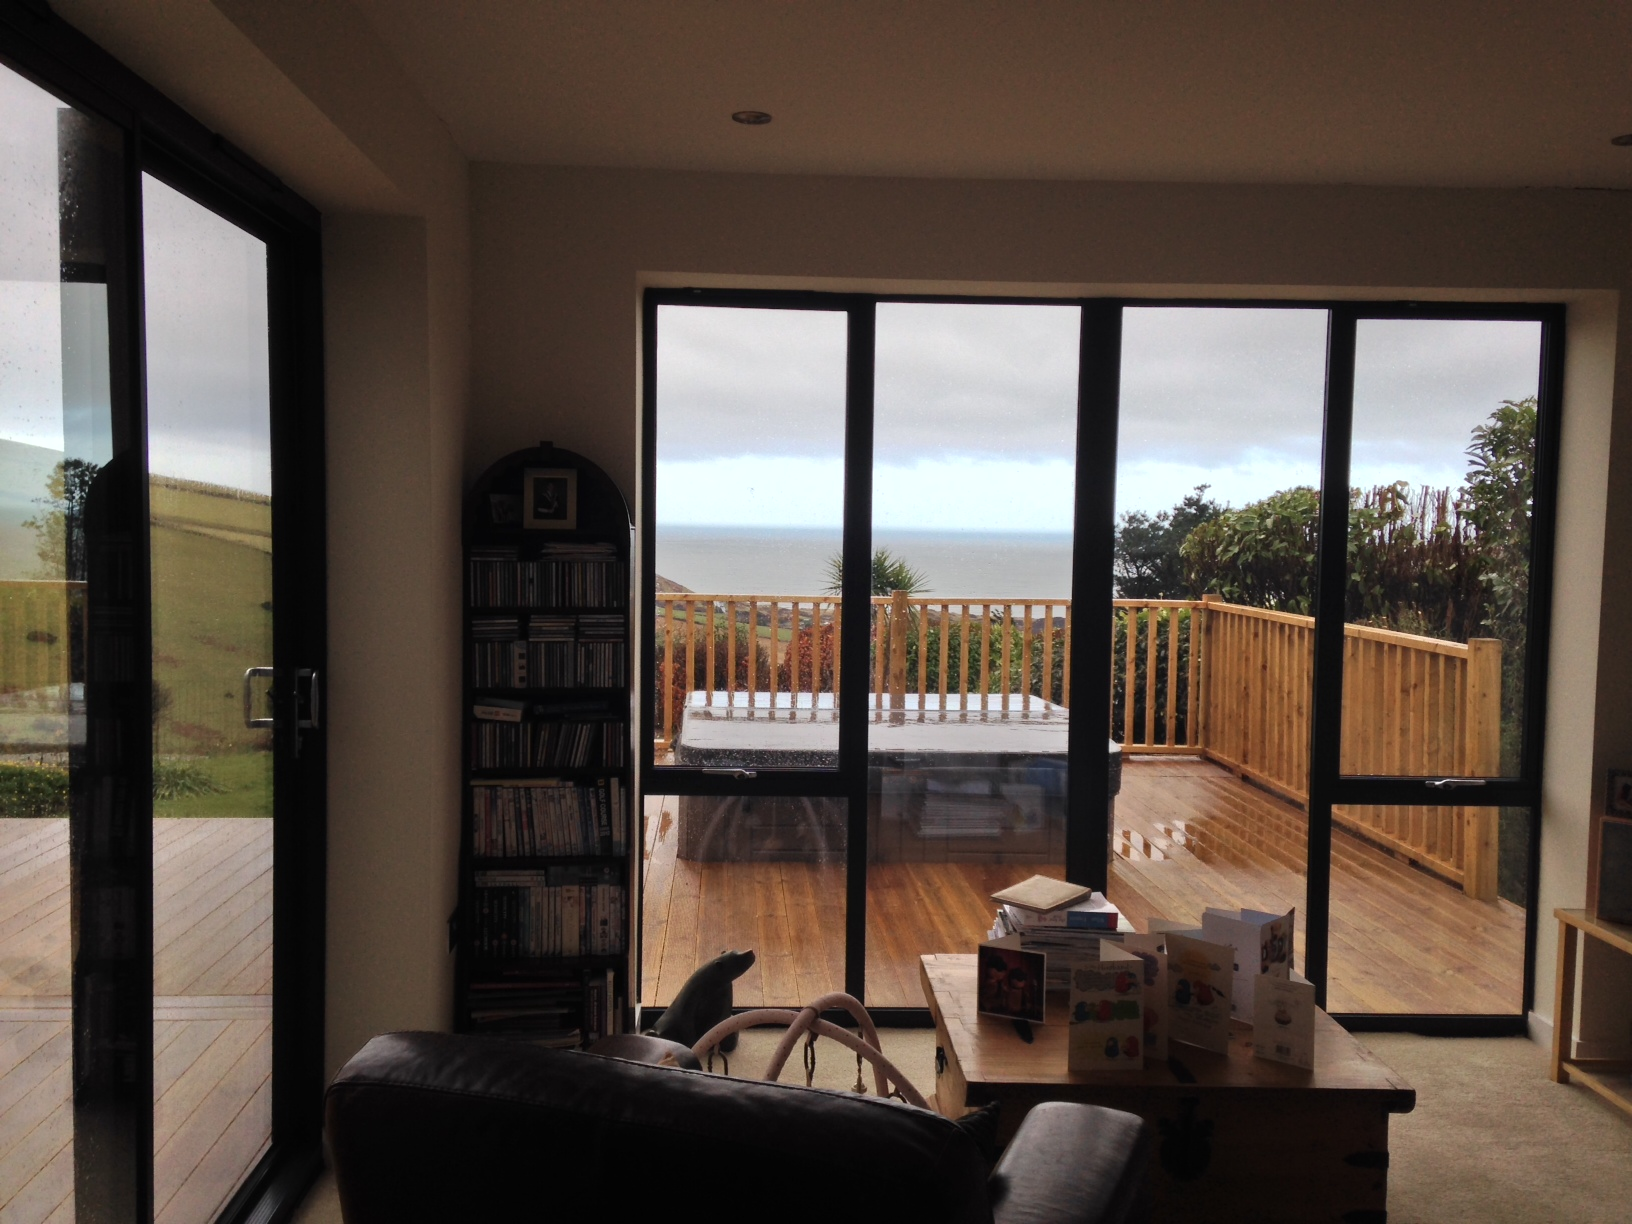 Woodstock Windows grey aluminium with a North Devon view